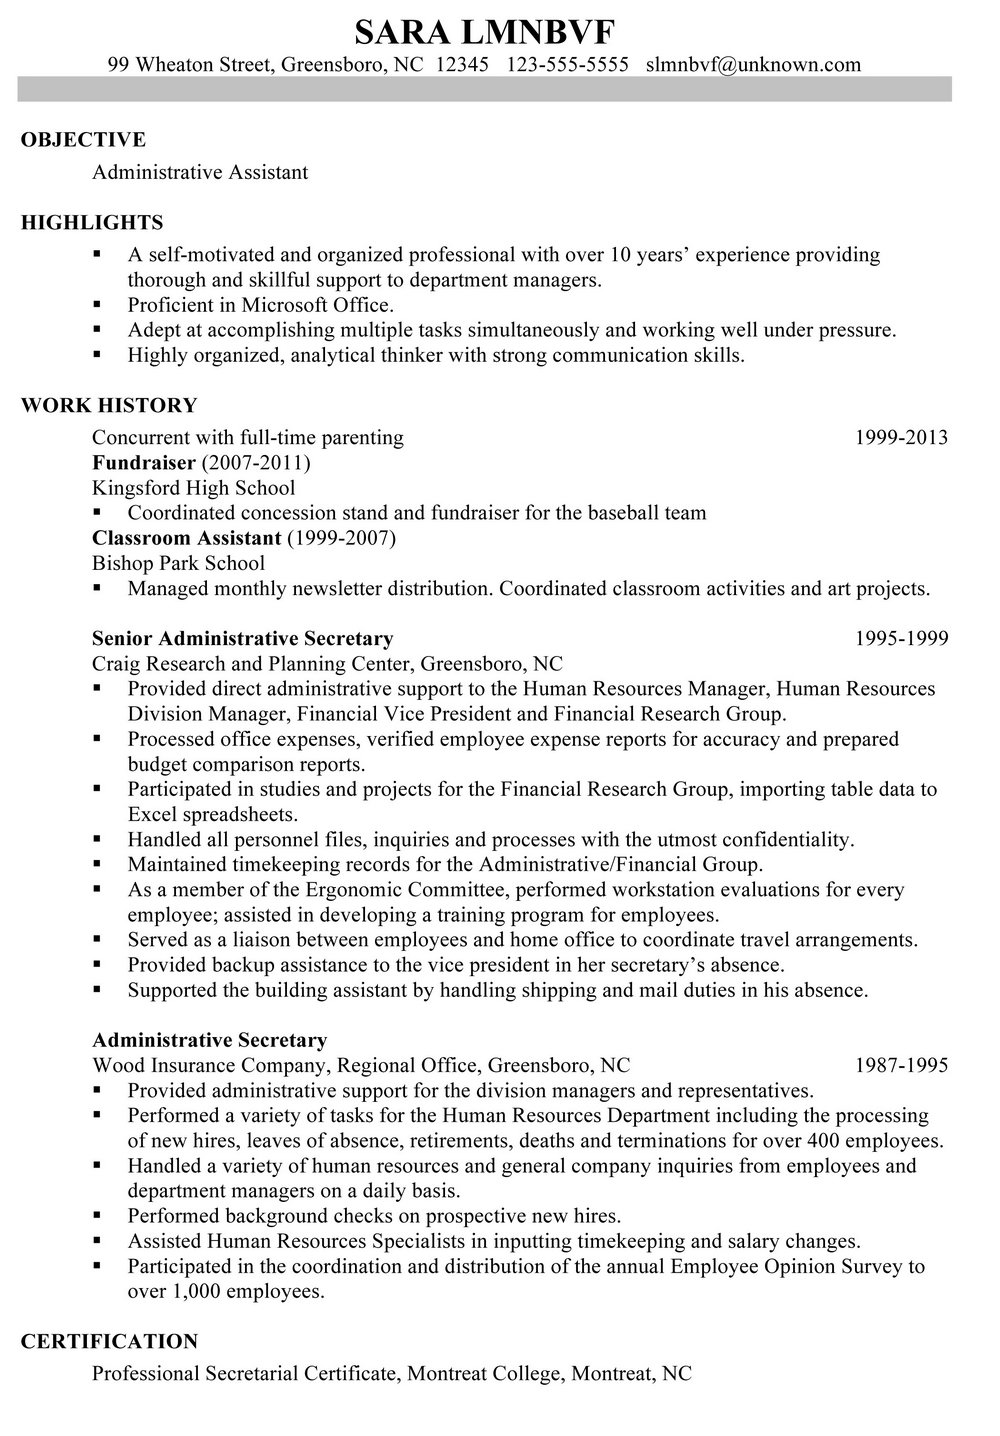 Resume Chronological Template